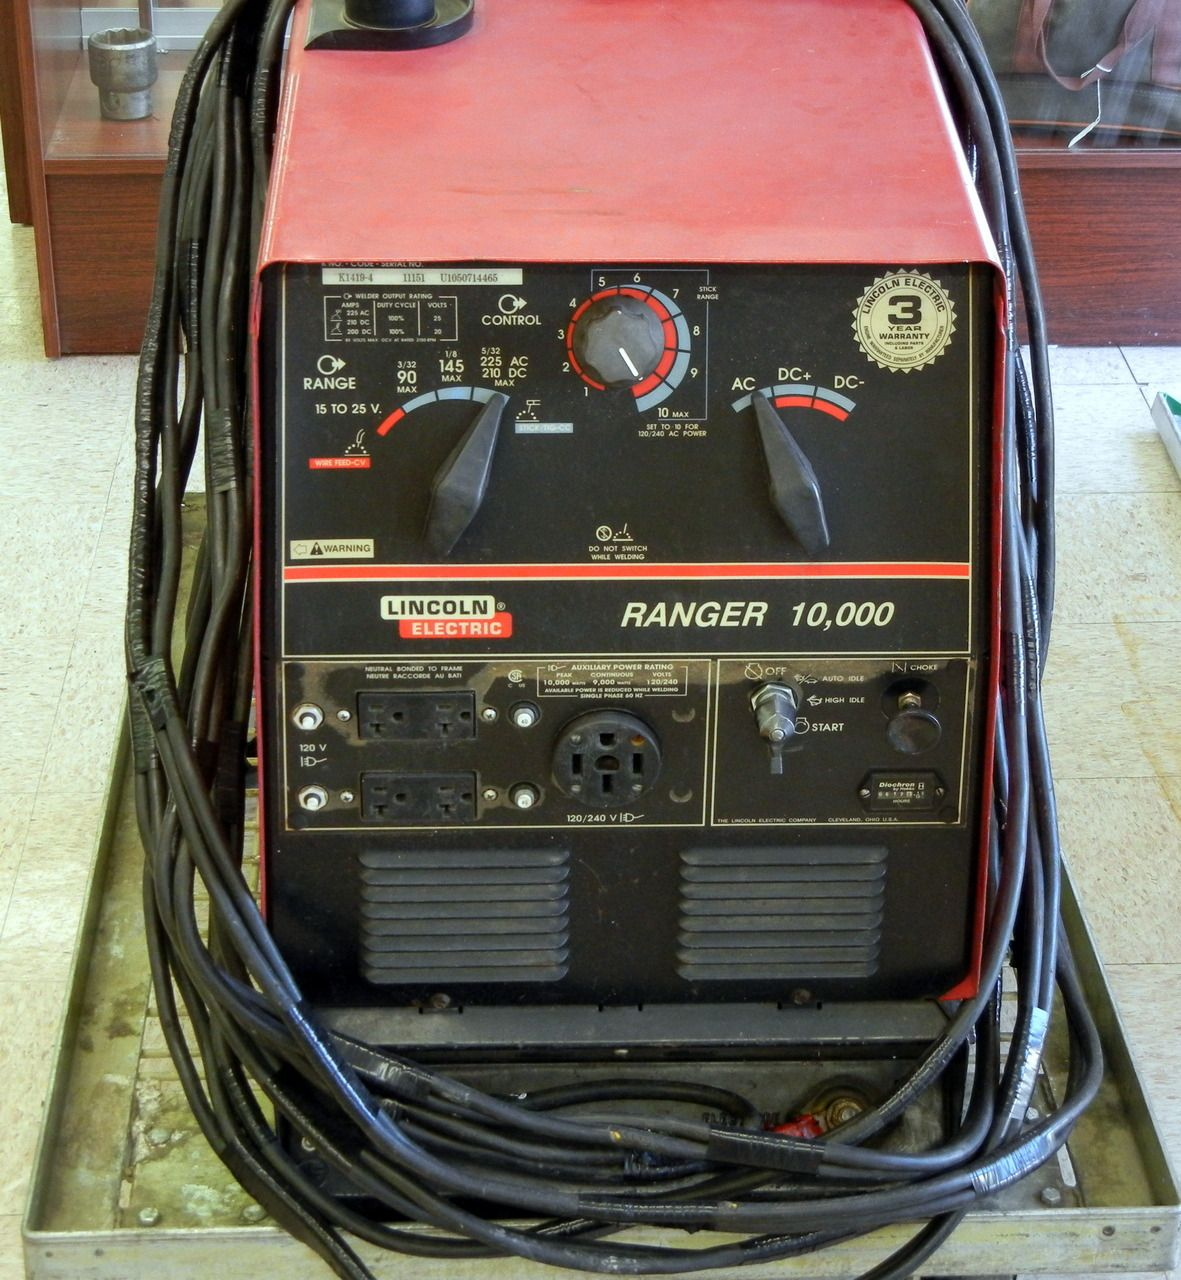 hight resolution of pin by plano pawn shop on tools welder generator welding ranger lincoln ranger 225 lincoln ranger 10000 wiring diagram